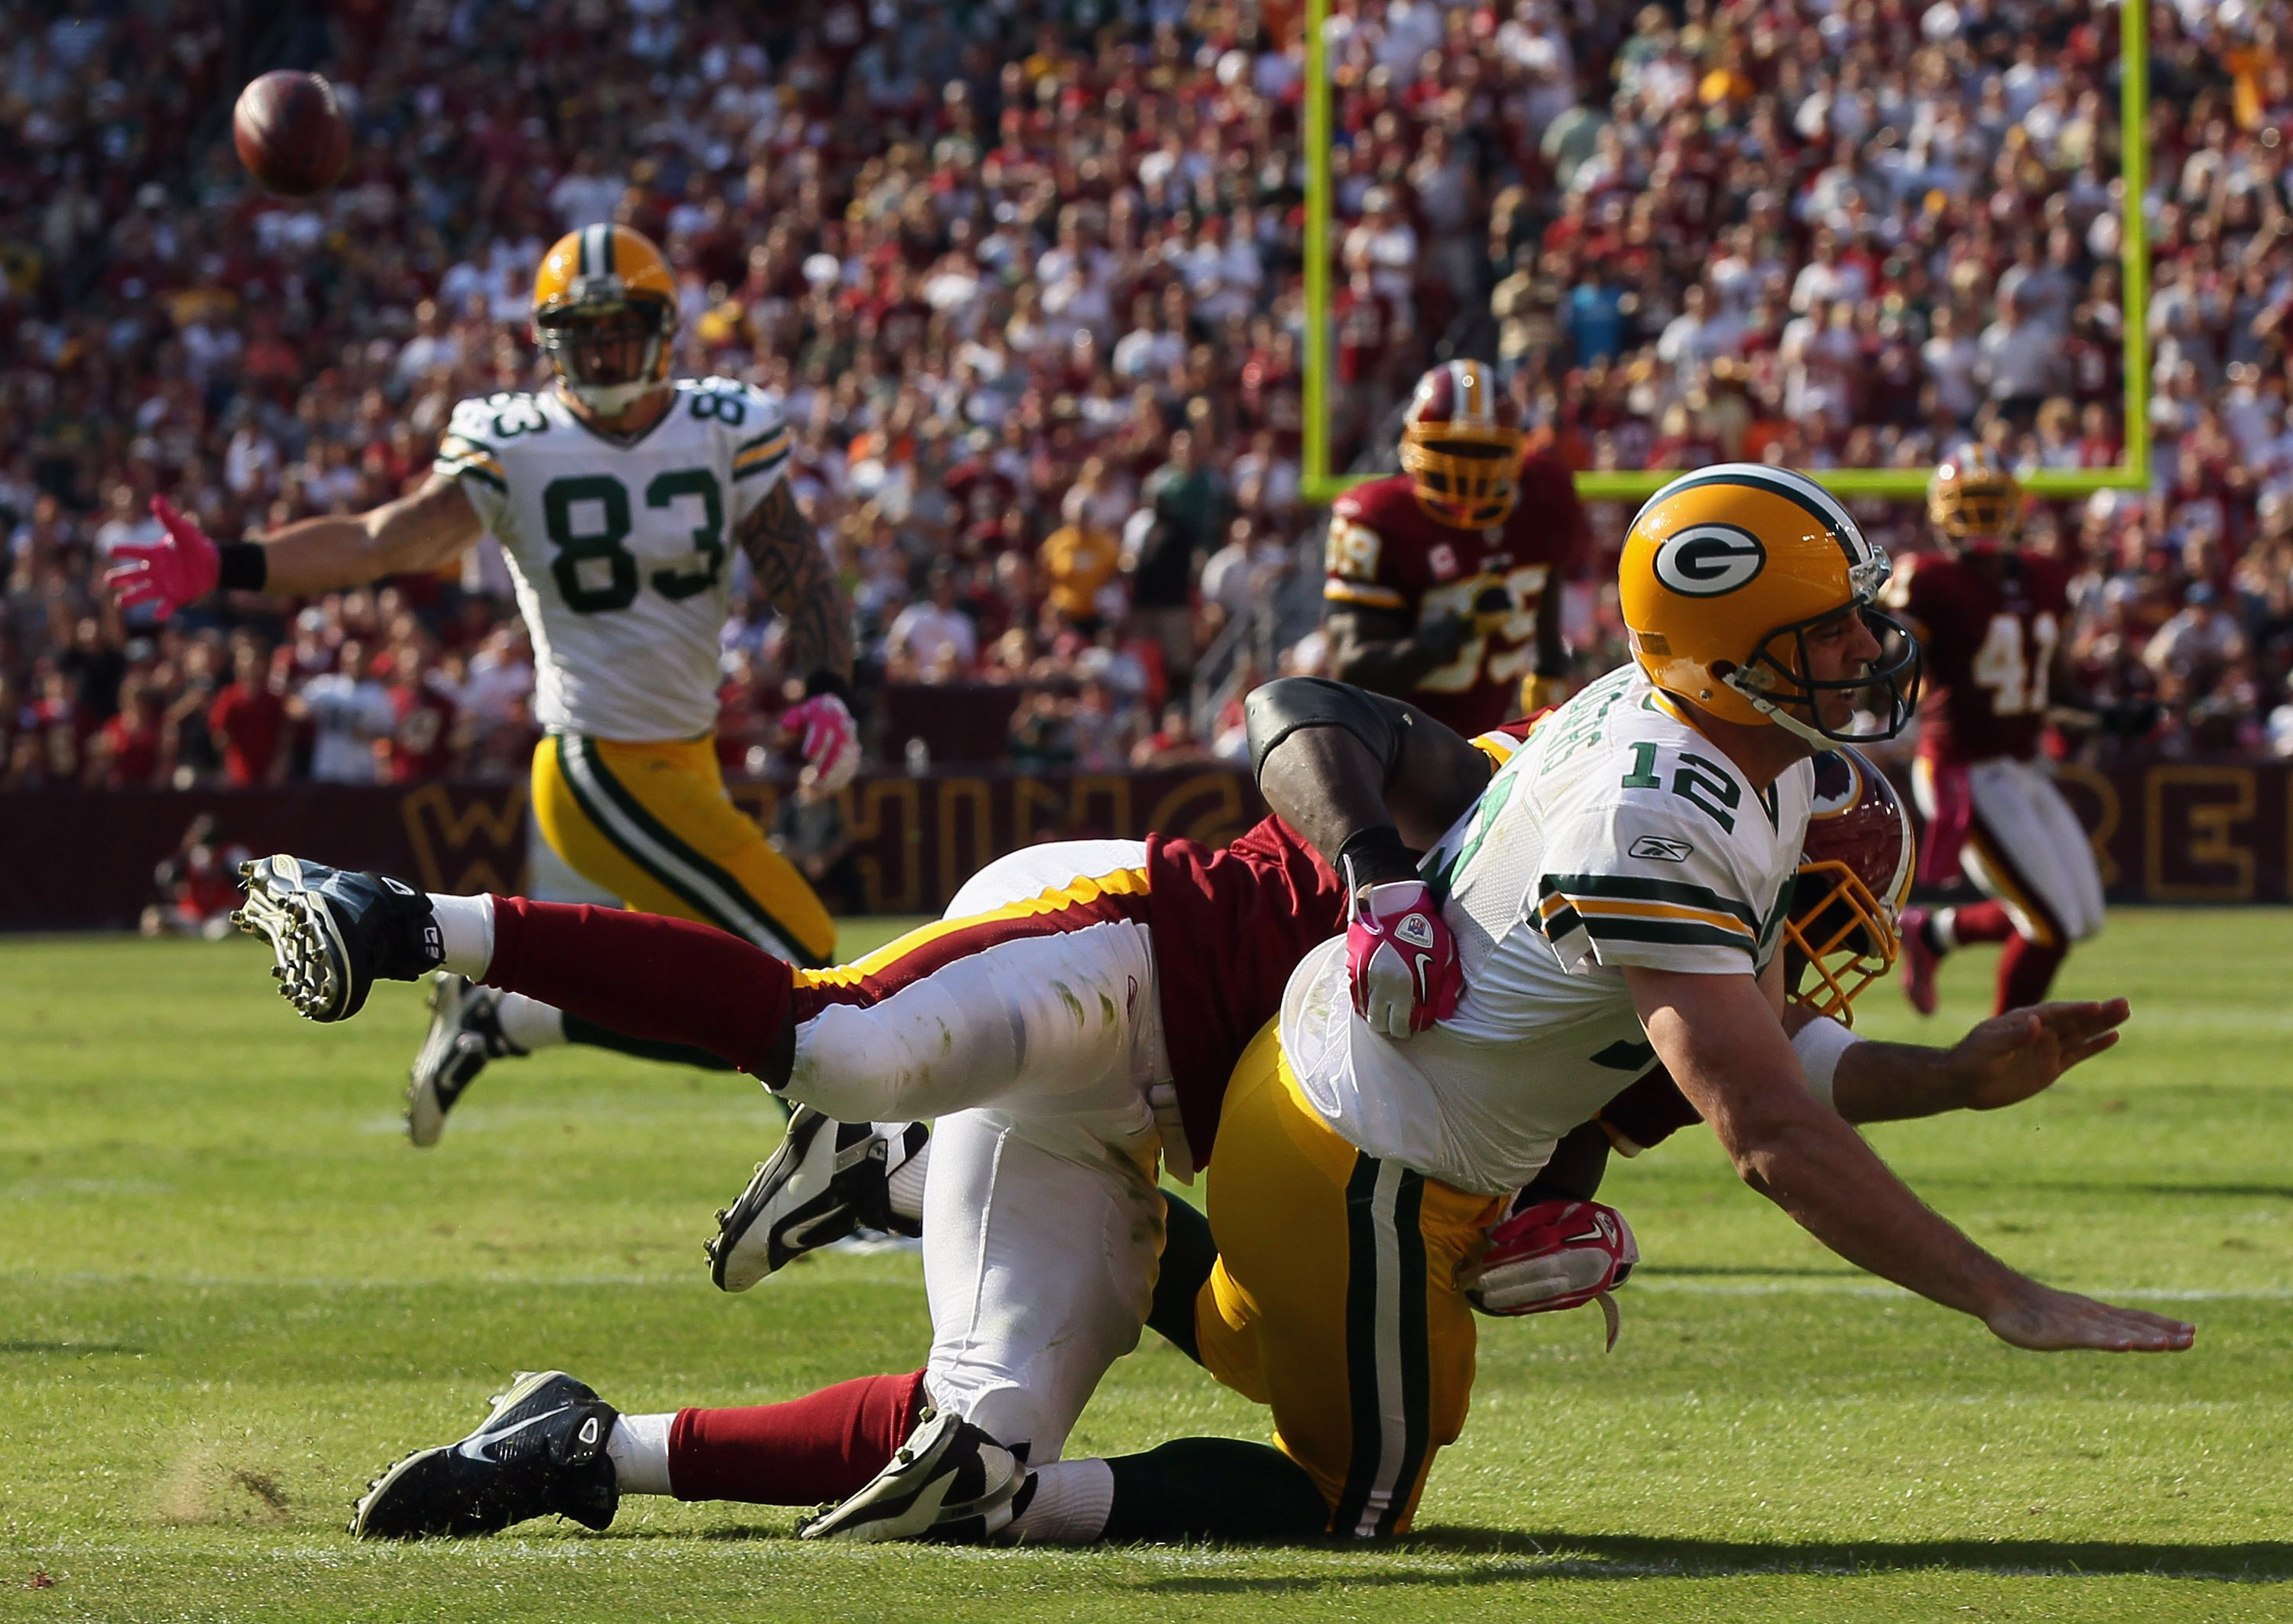 LANDOVER, MD - OCTOBER 10:  Quarterback Aaron Rodgers #12 of the Green Bay Packers is taken to the ground by lineback Brian Orakpo #98 of the Washington Redskins in the fourth quarter at FedExField on October 10, 2010 in Landover, Maryland. The Redskins w